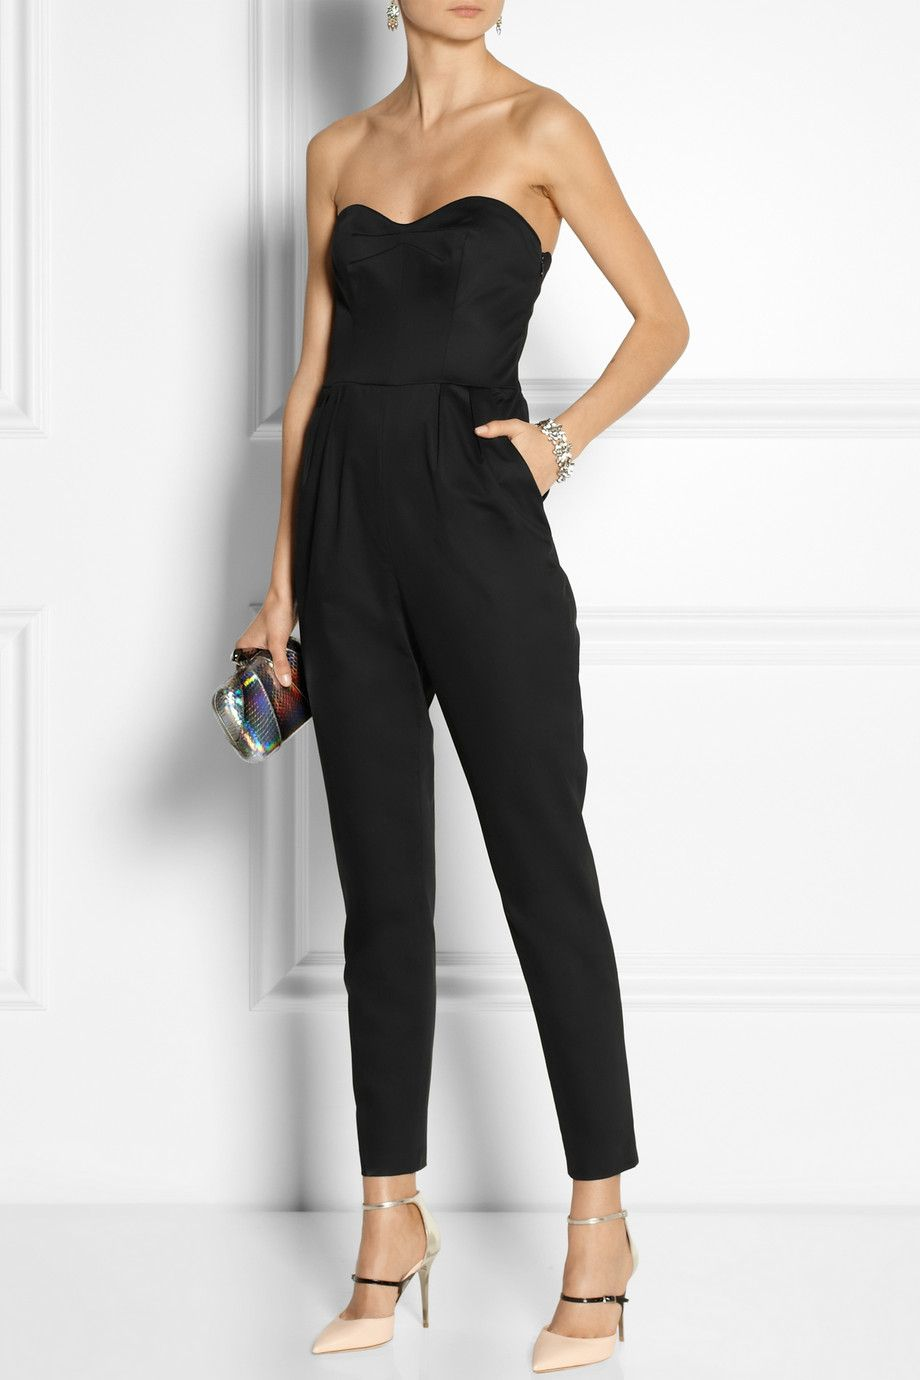 8671c9f51f4 MILLY Strapless matte-satin jumpsuit  395 EDITOR S NOTES Milly s black  matte-satin jumpsuit is a chic alternative to the party dress.